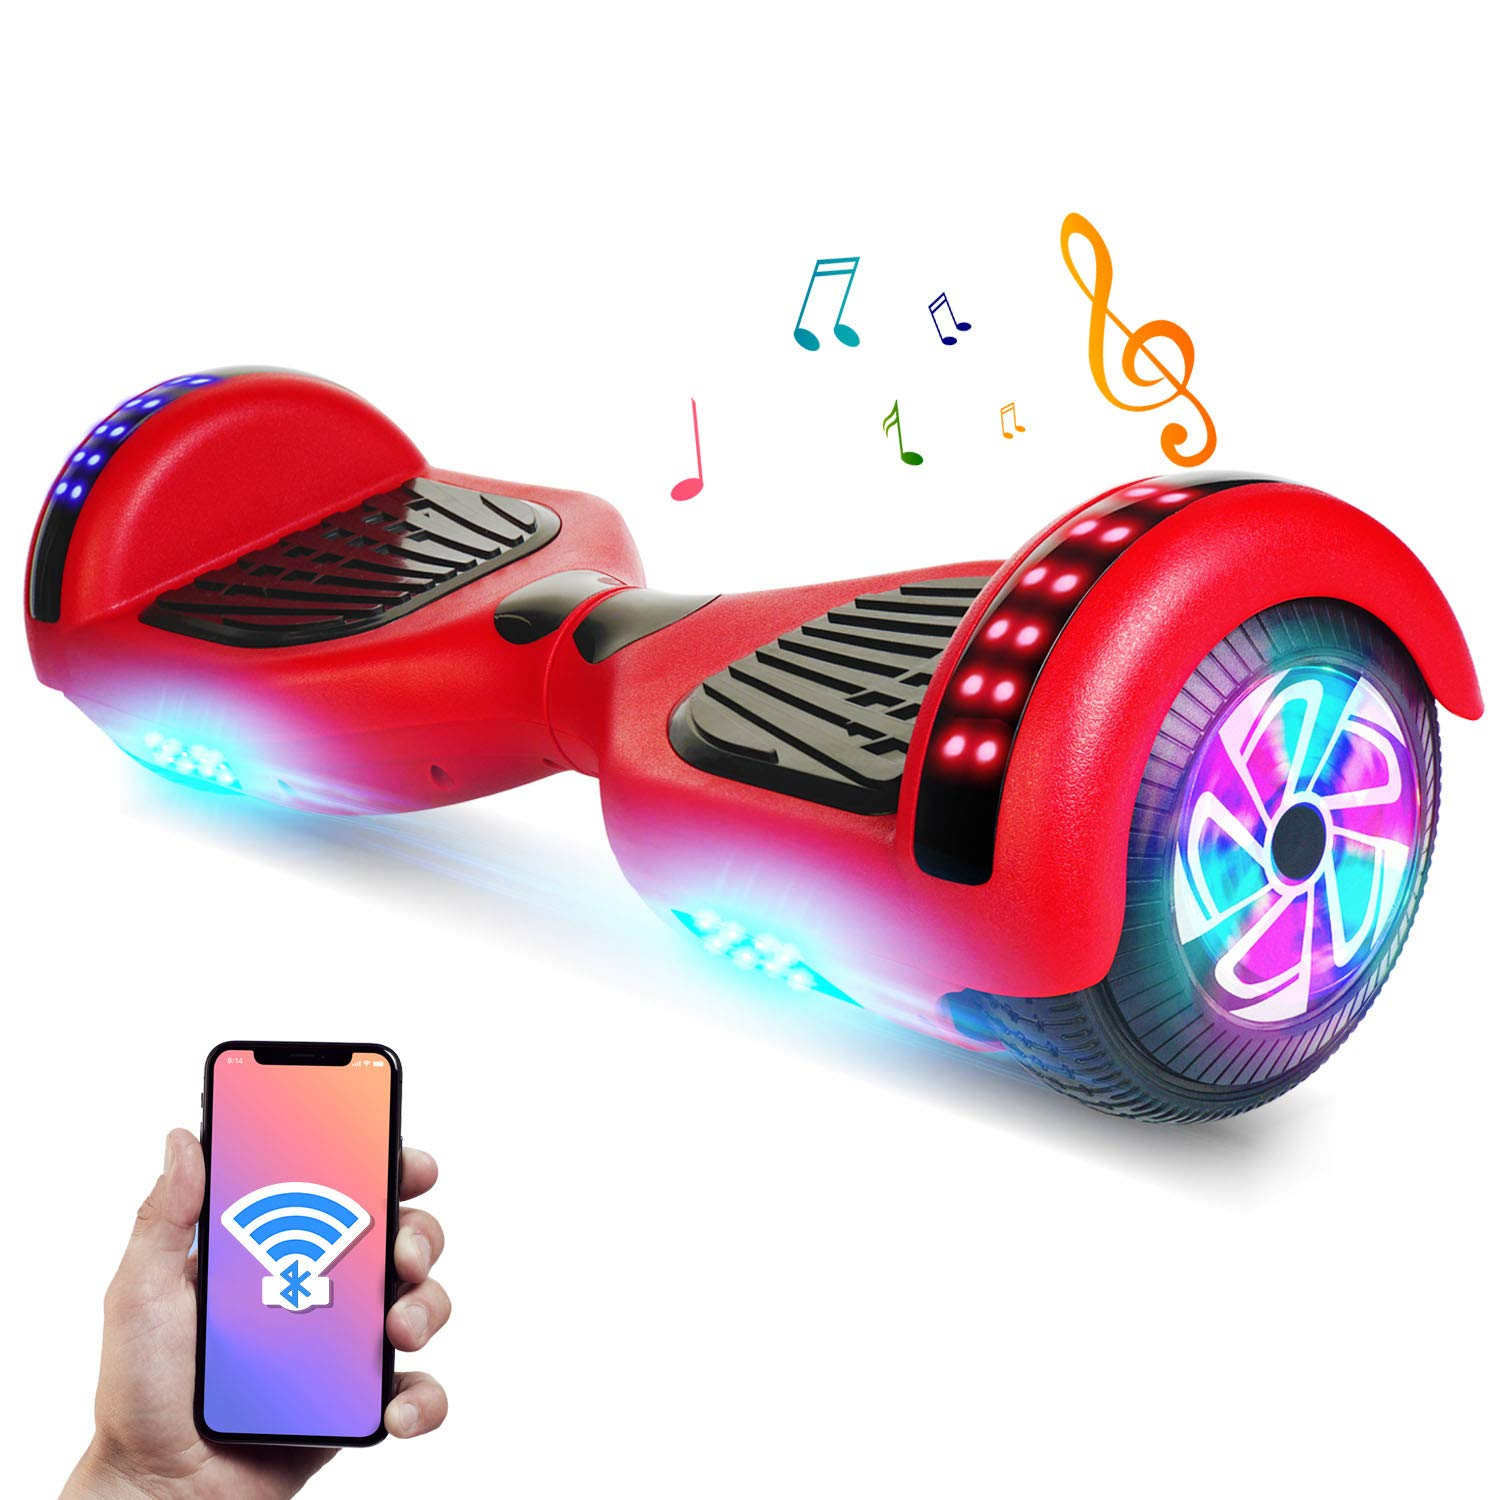 YHR 6.5'' Hoverboard -Self Balancing Scooter 2 Wheel Electric Scooter - UL Certified 2272 Bluetooth W/Speaker, LED Wheels and LED Lights (Red)